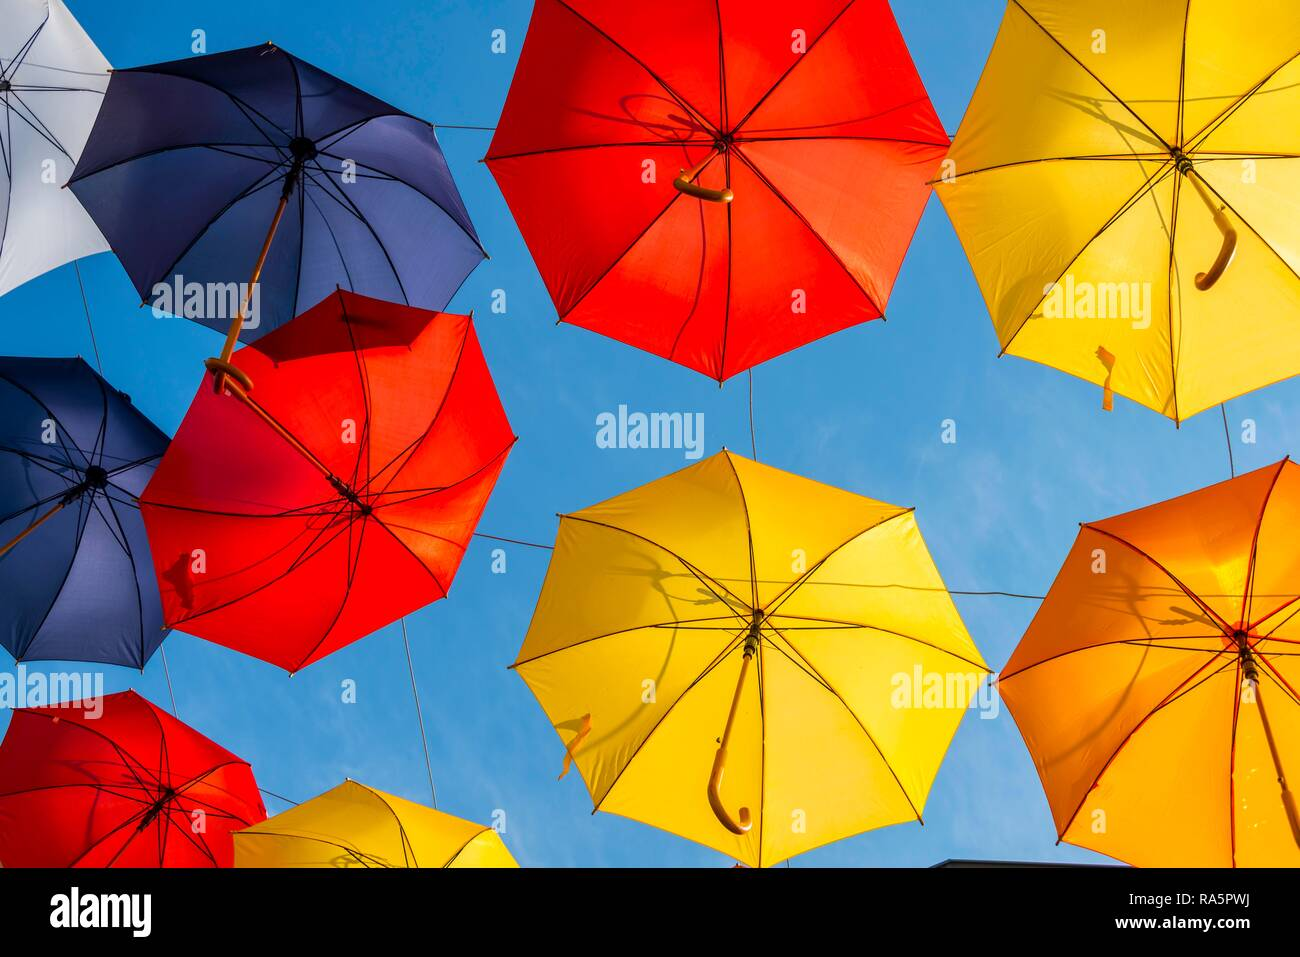 Many colorful umbrellas, parasols, hanging in the air, sunshine in front of blue sky, Imst, Tyrol, Austria - Stock Image